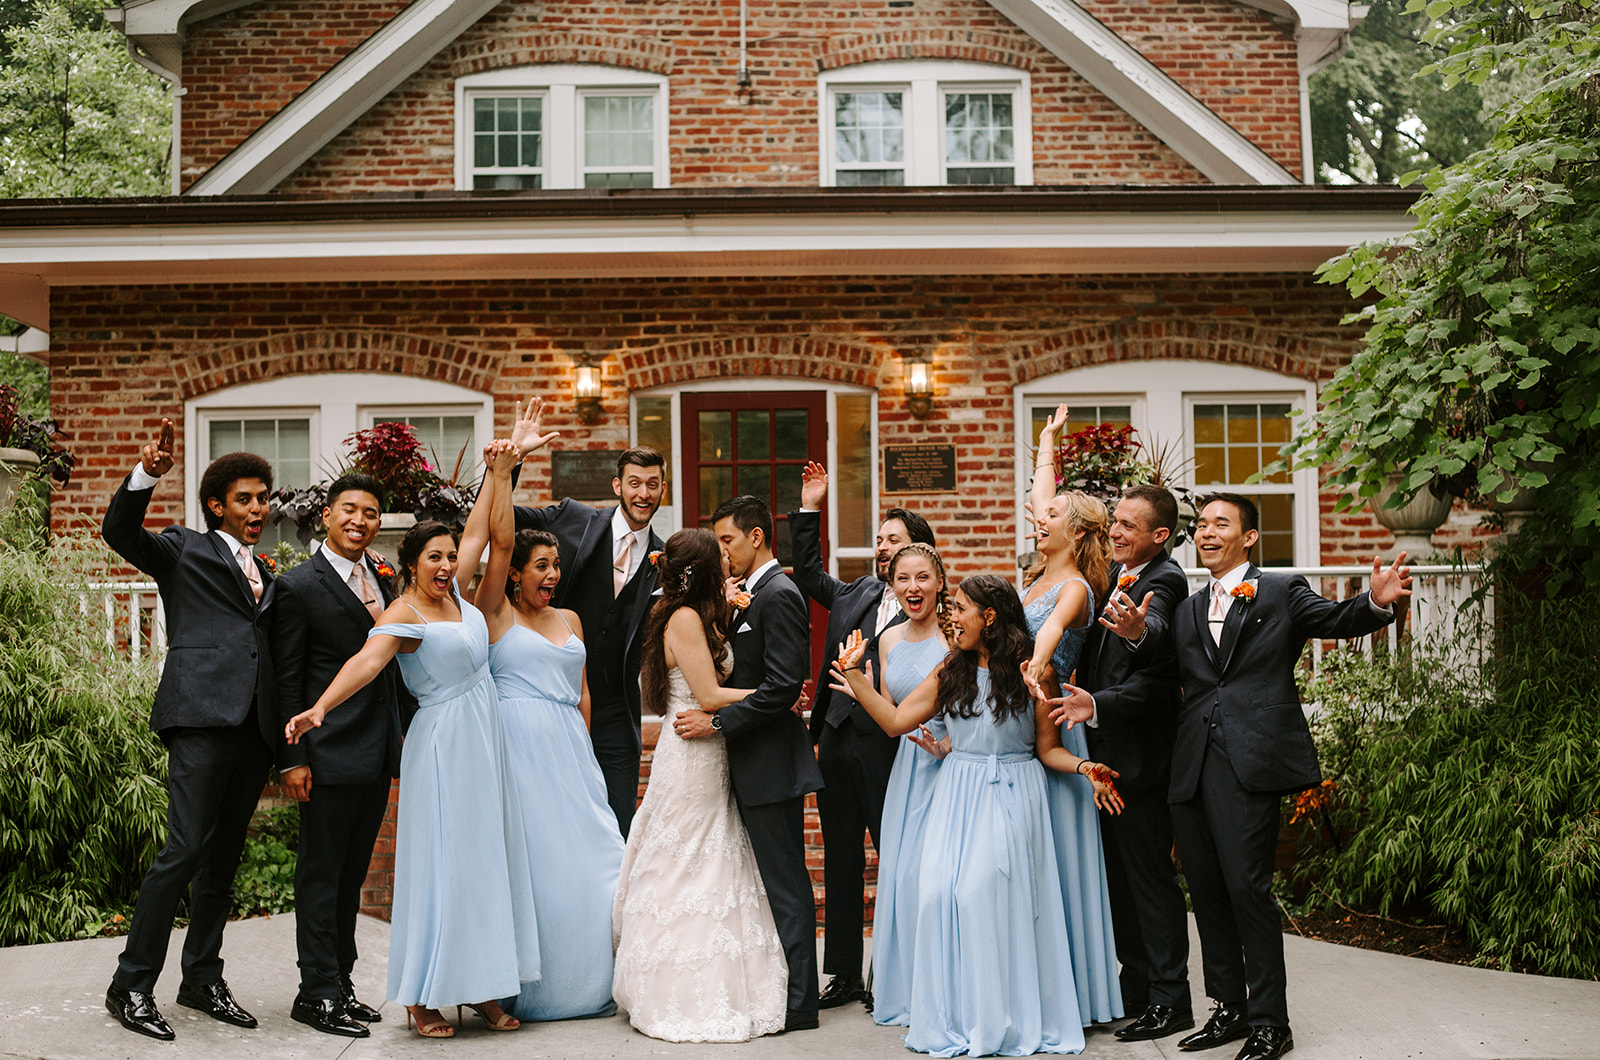 All of our wedding party!